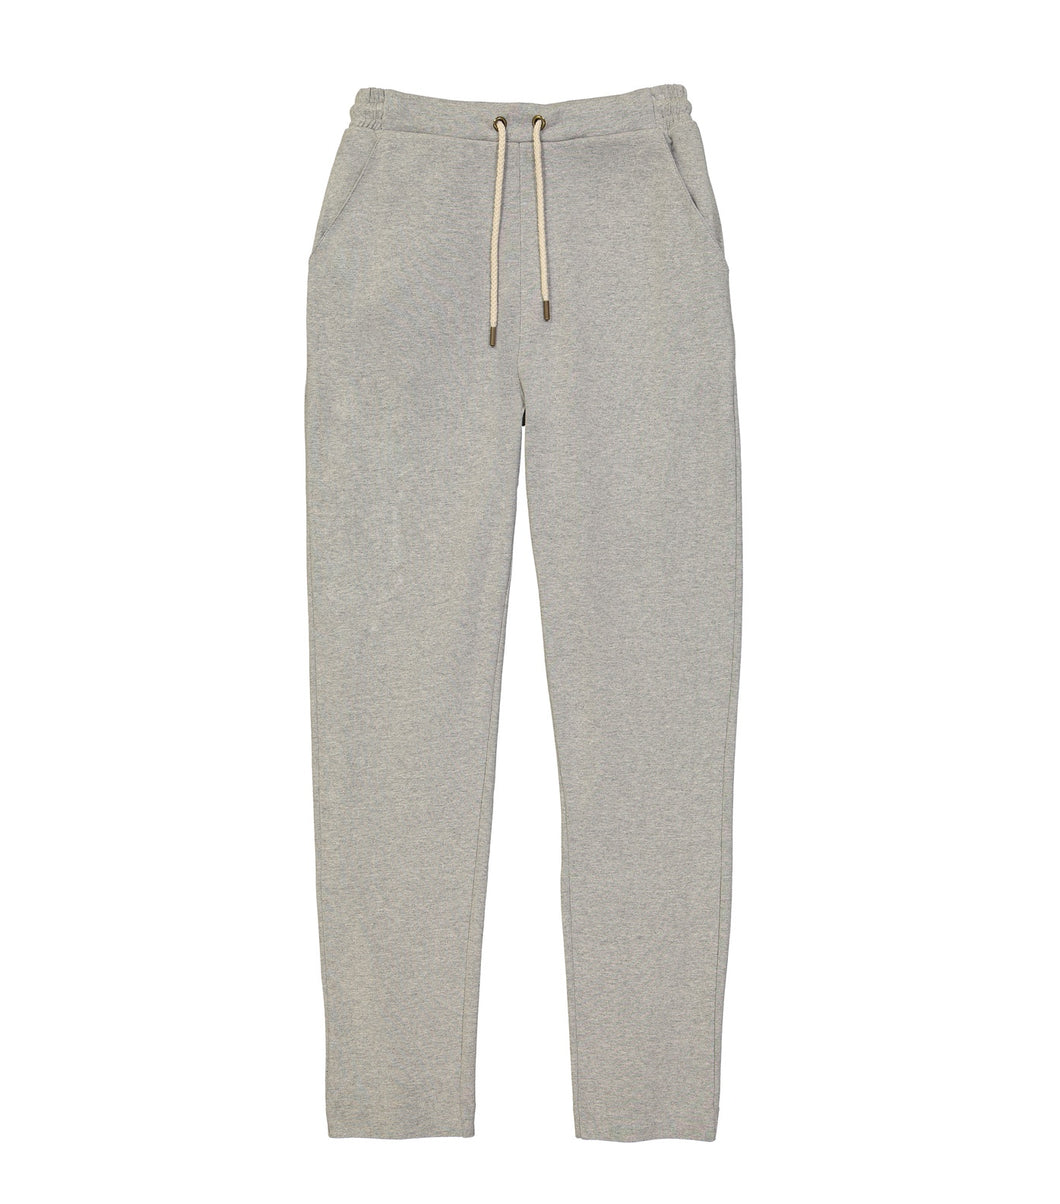 JOGGPANTS DIMANCHES GREY